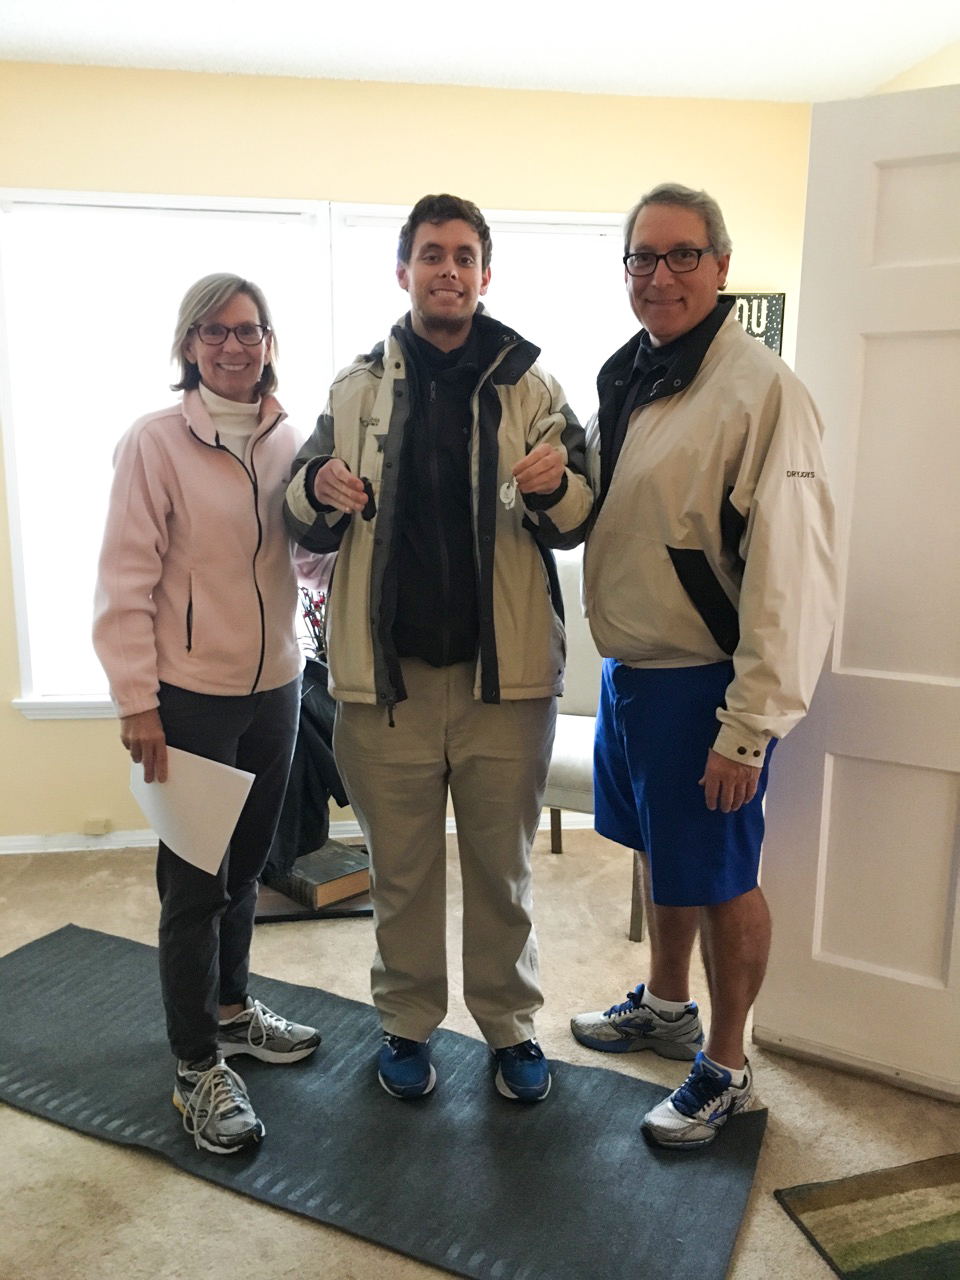 HOPE resident receives keys to first independent home.